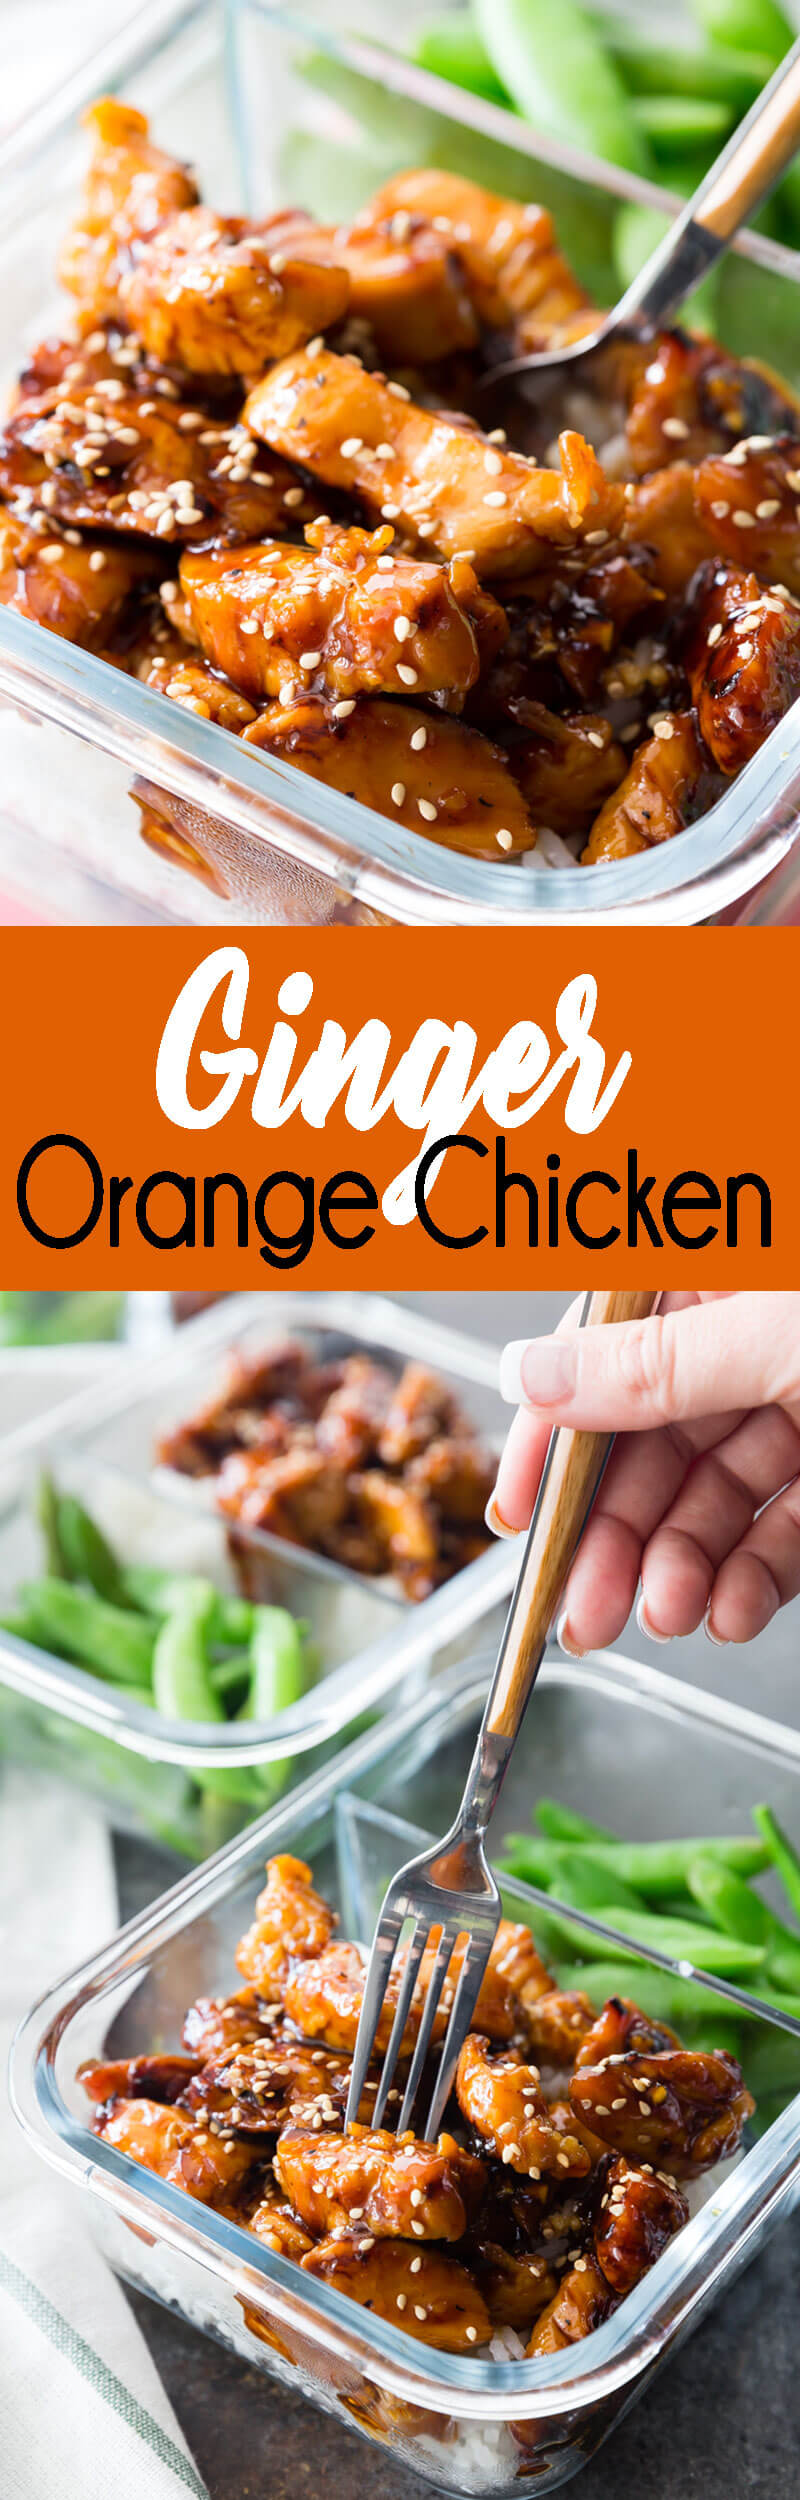 GInger Orange Chicken meal prep is a great make ahead lunch option